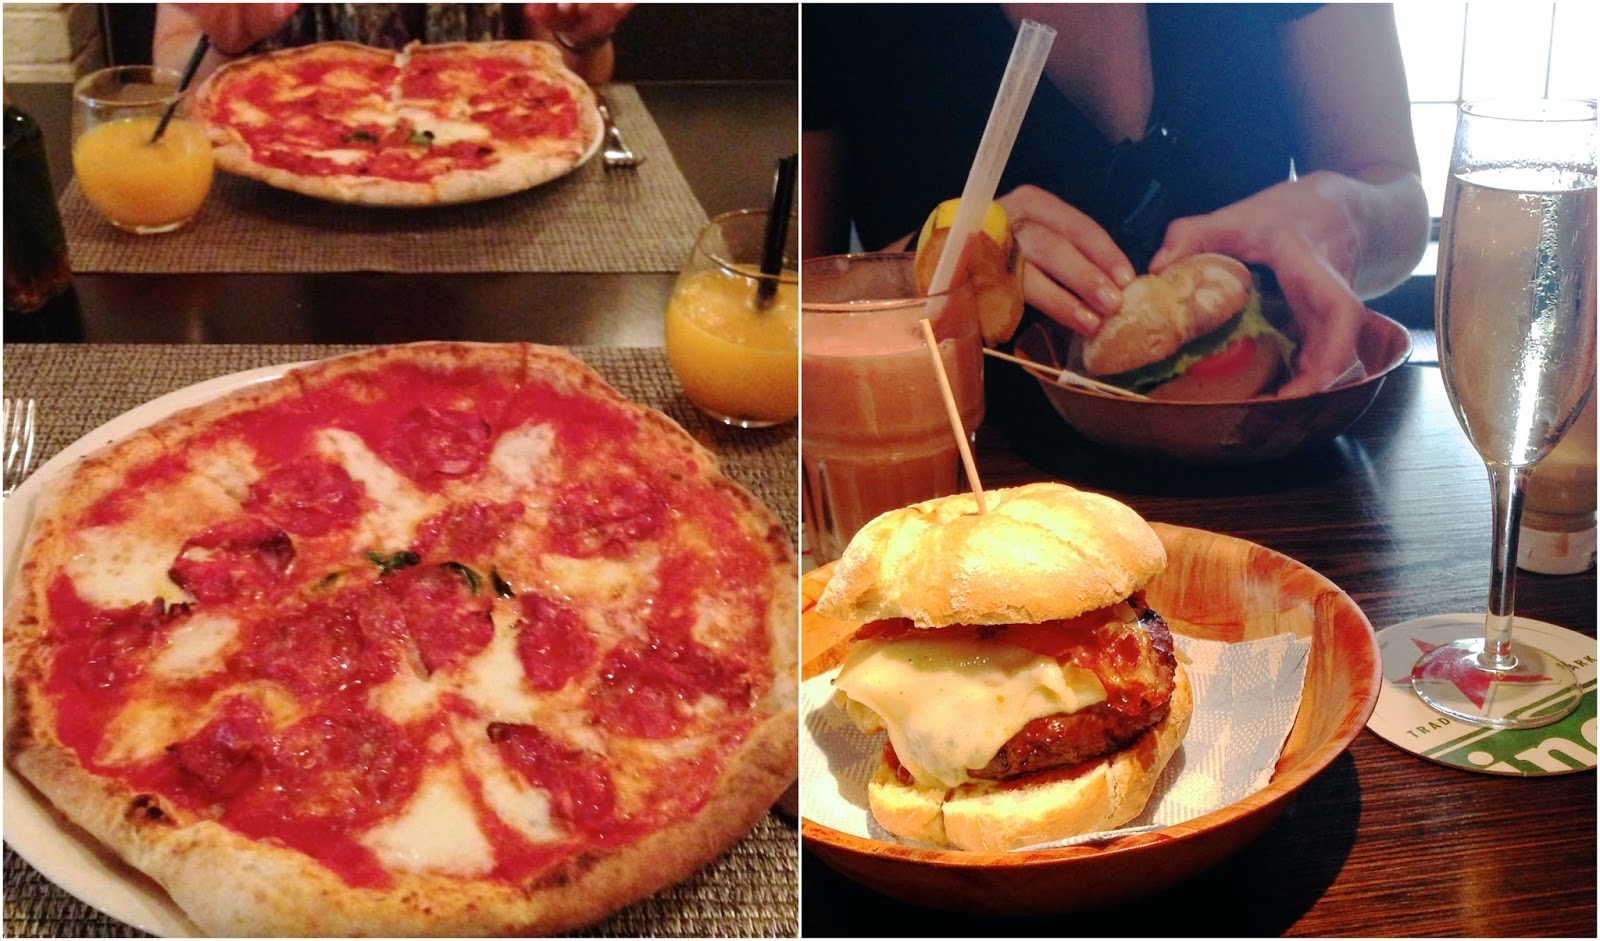 Pizza at Restaurante Margherita and a burger at Makamaka Beach Bar